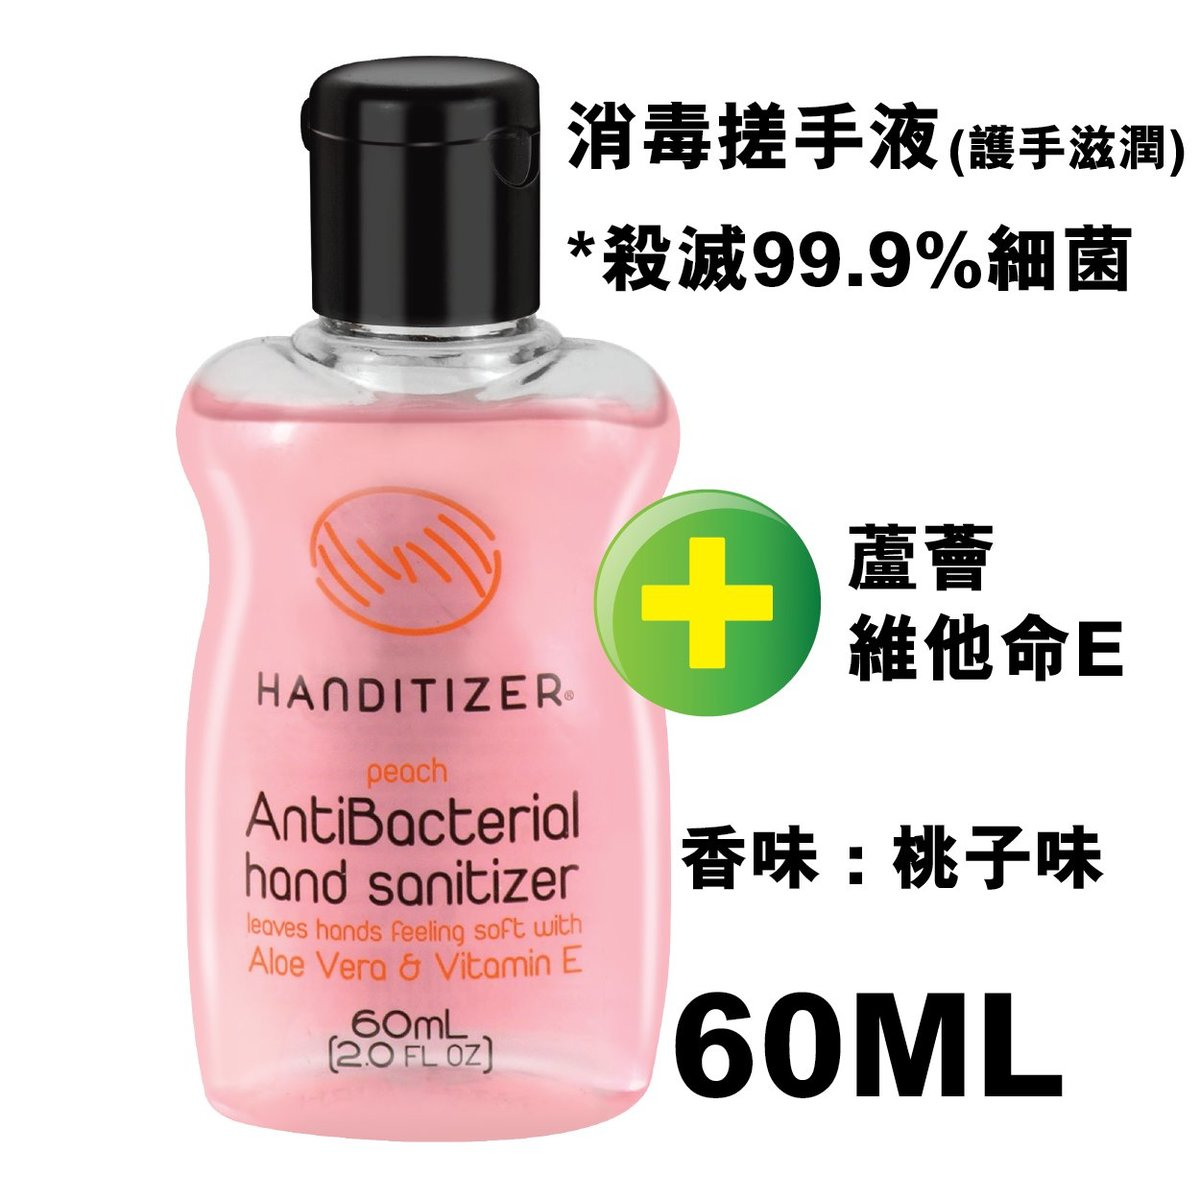 Anti Bacterial Hand Sanitizer 60ML (Peach)